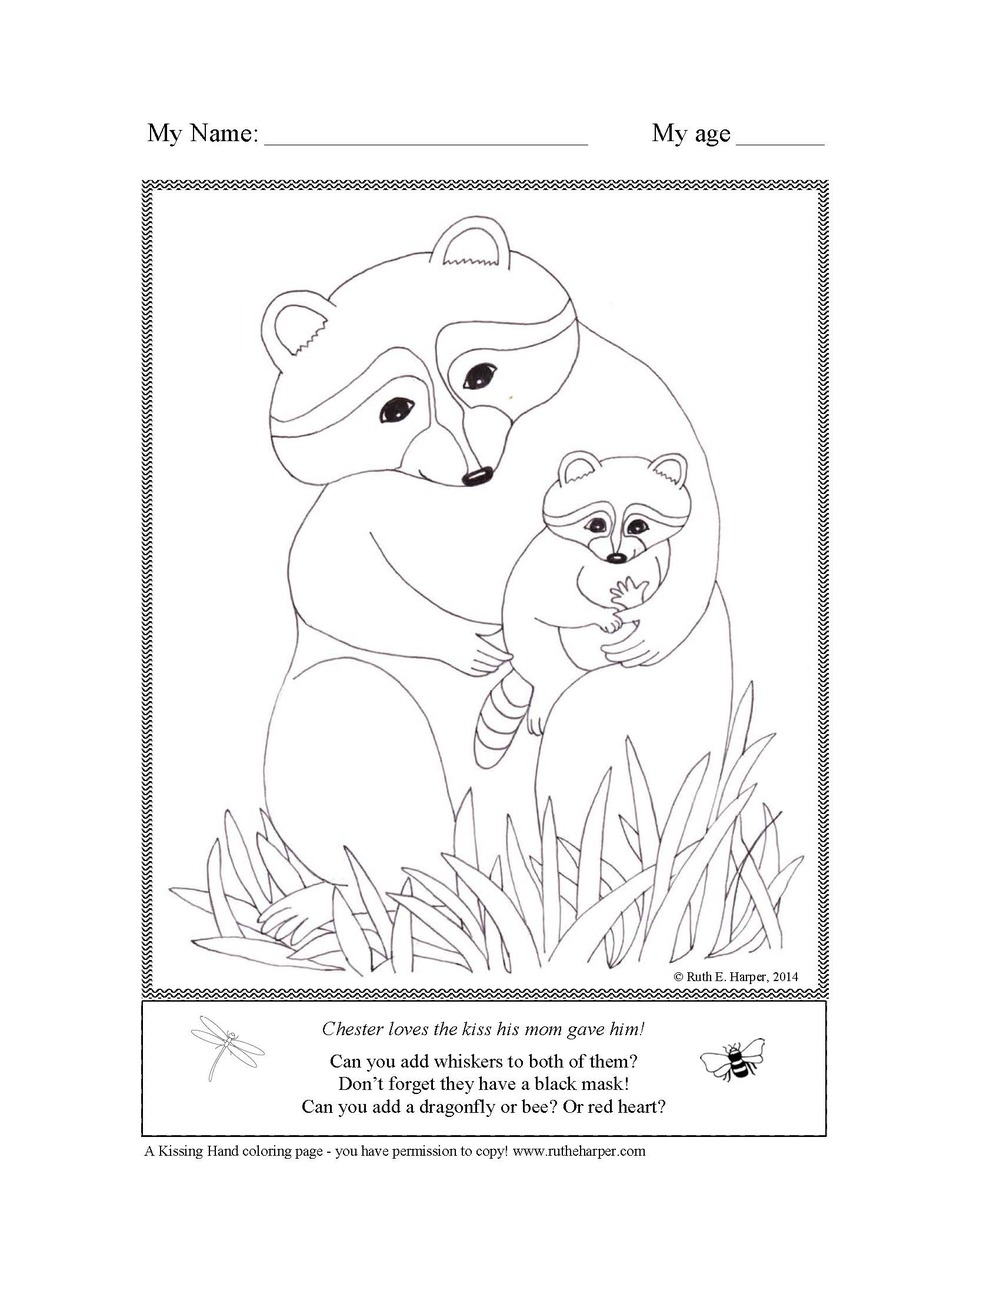 chester on moms lap - Hand Coloring Page